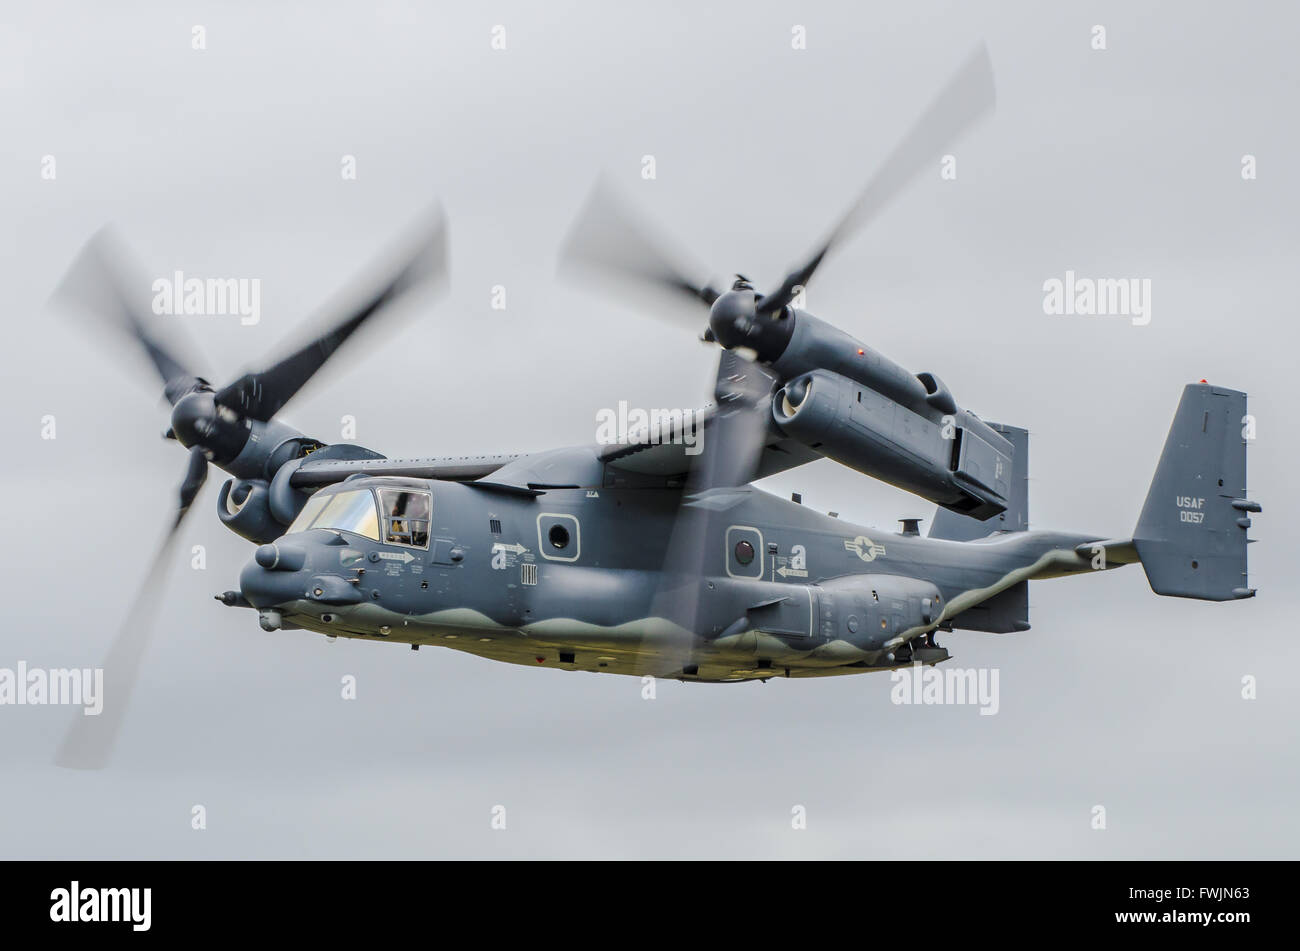 Bell Boeing V-22 Osprey is an American multi-mission ...